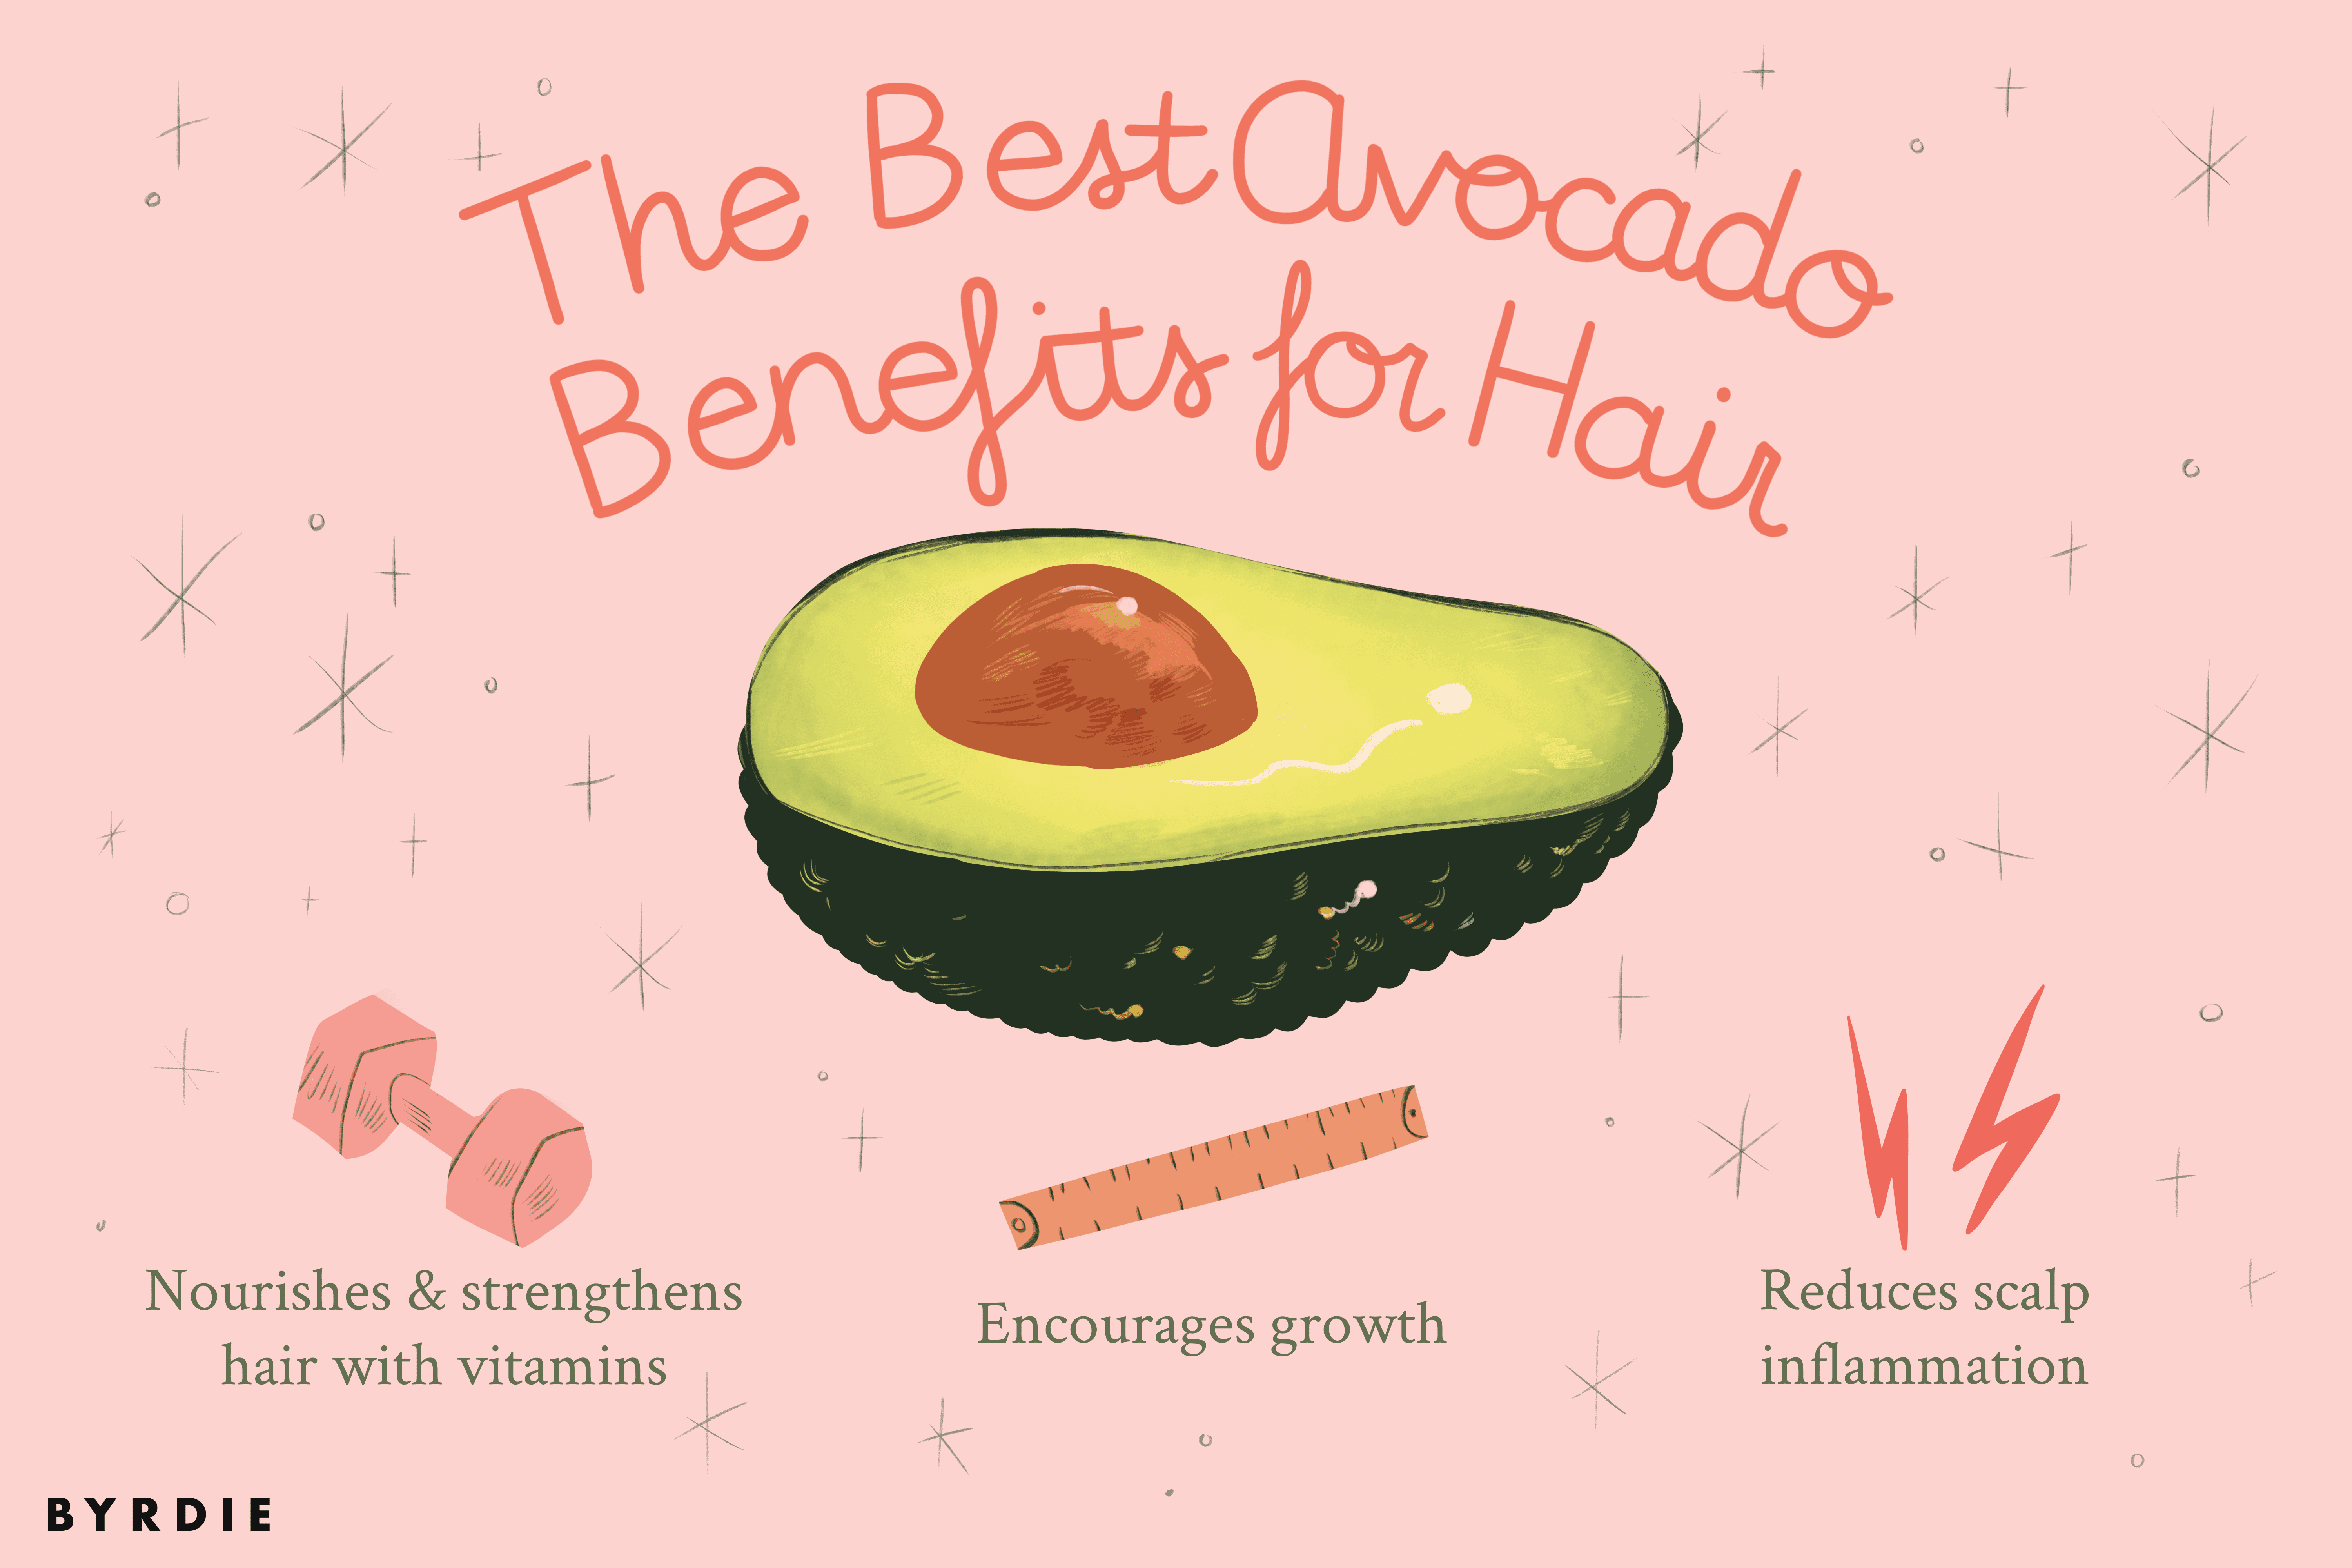 The Best Avocado Benefits for Hair